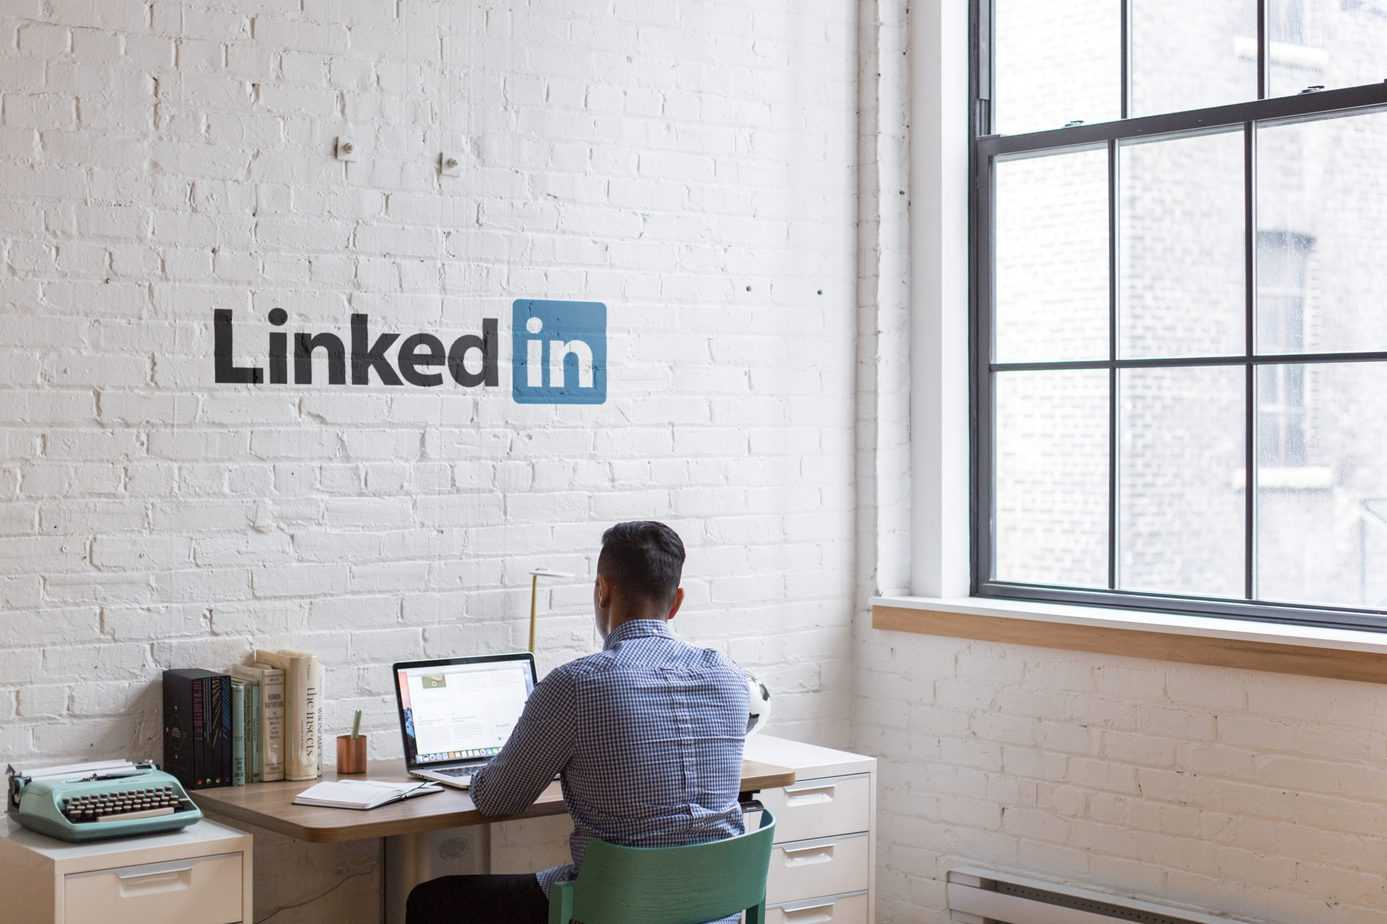 LinkedIn strategies for driving traffic to a corporate website